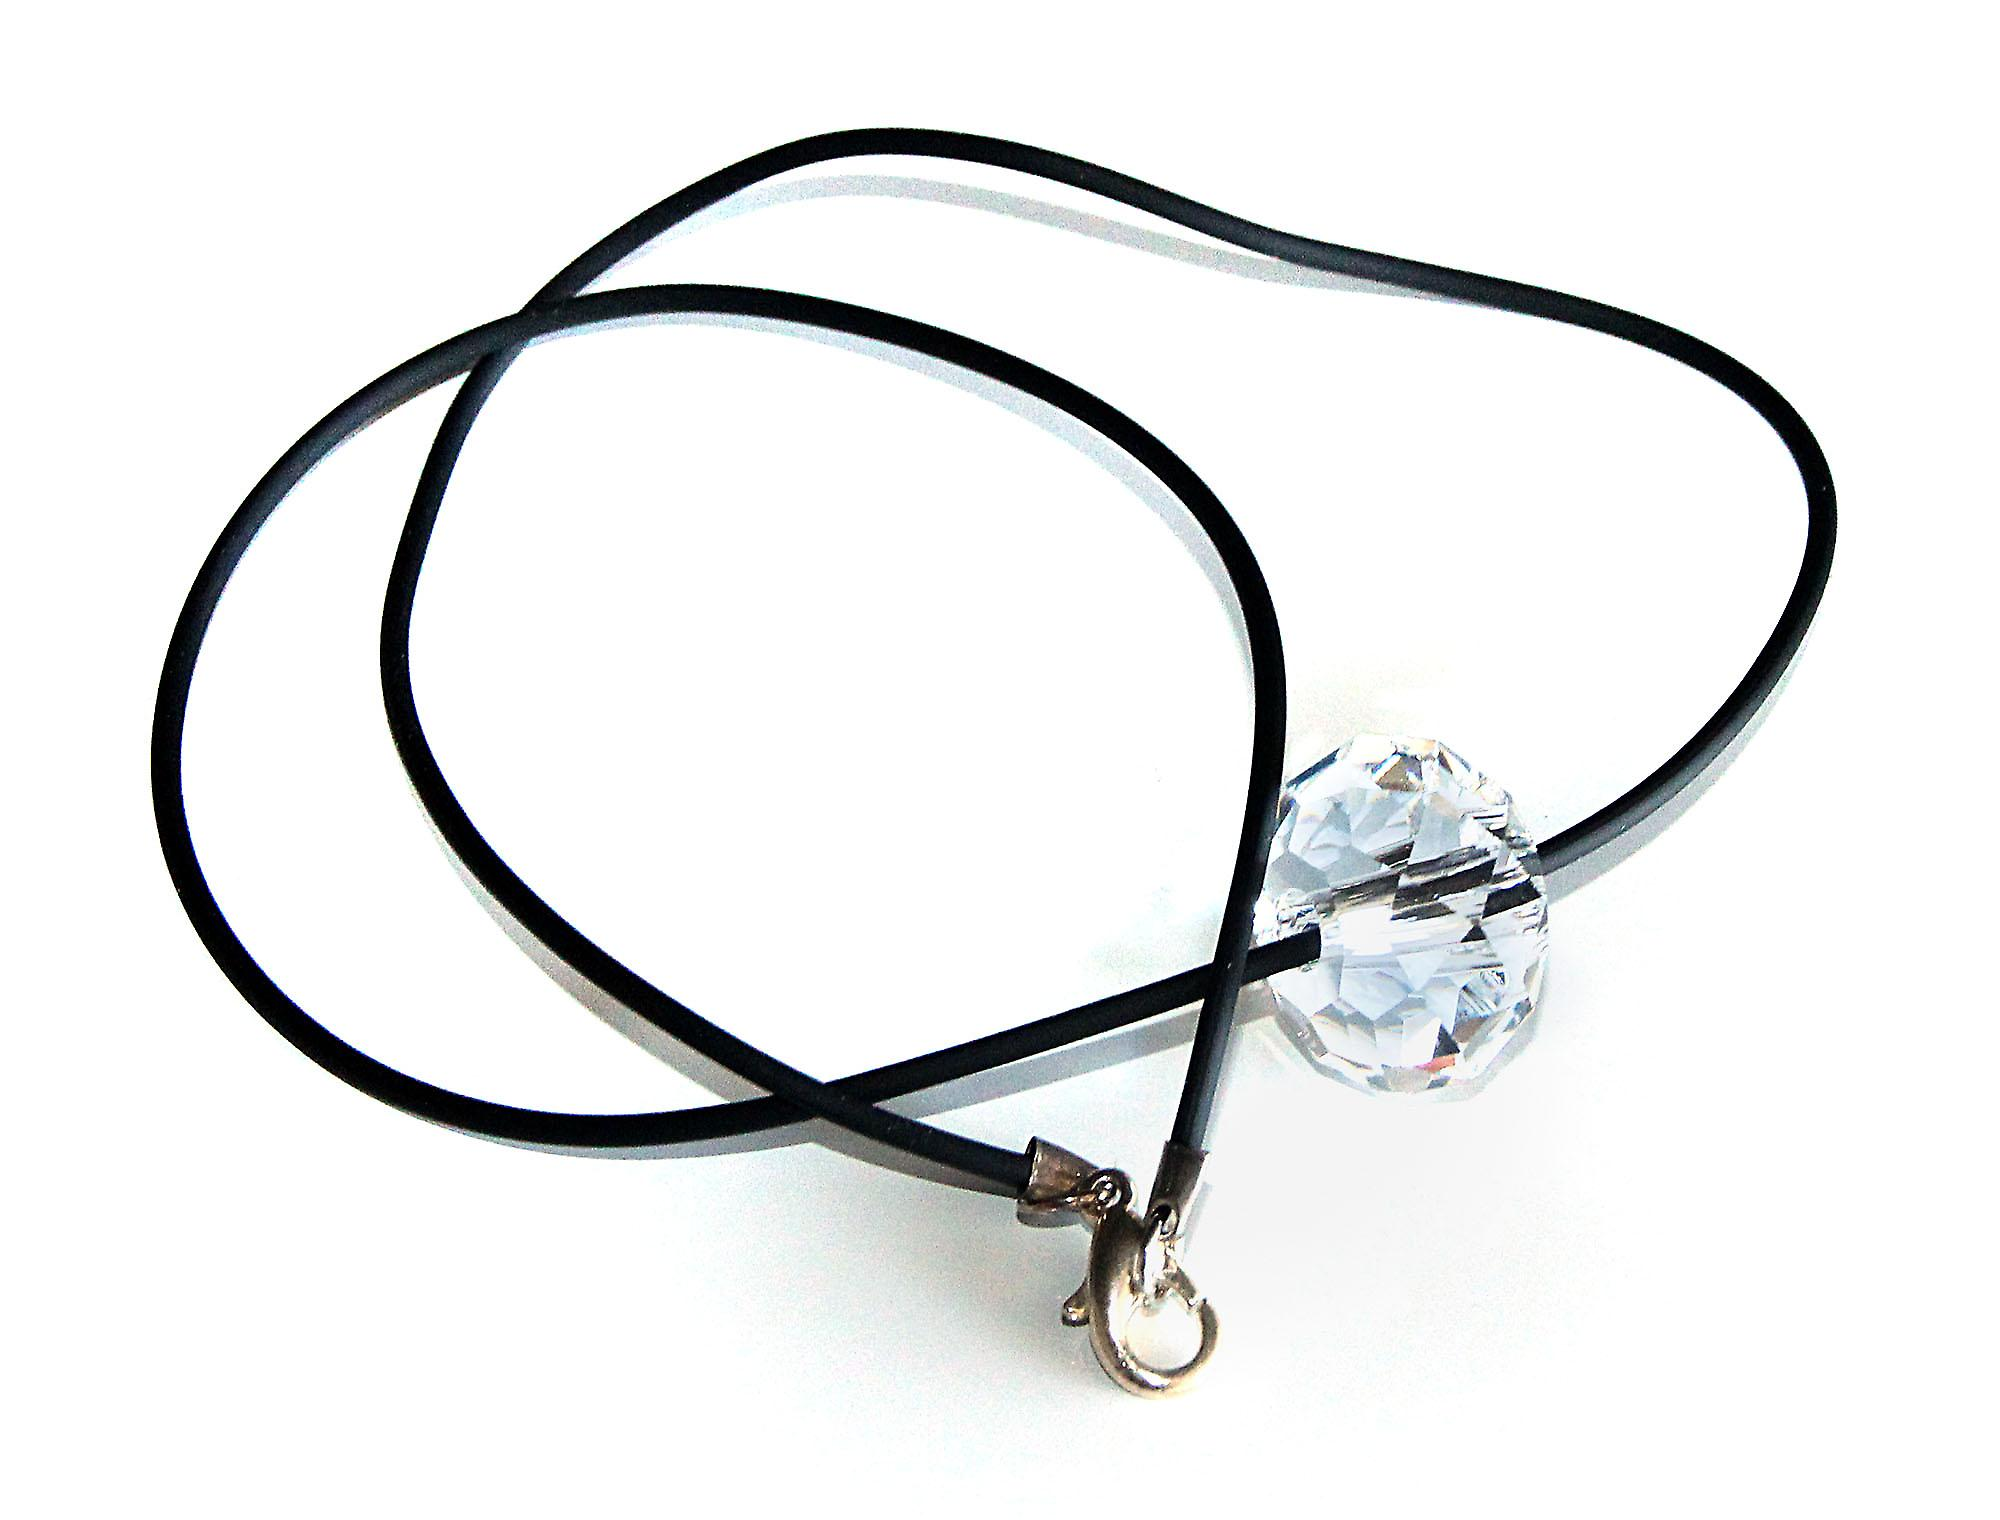 Waooh - Jewelry - Swarovski / white diamond pendant and rubber cord - Wholesale